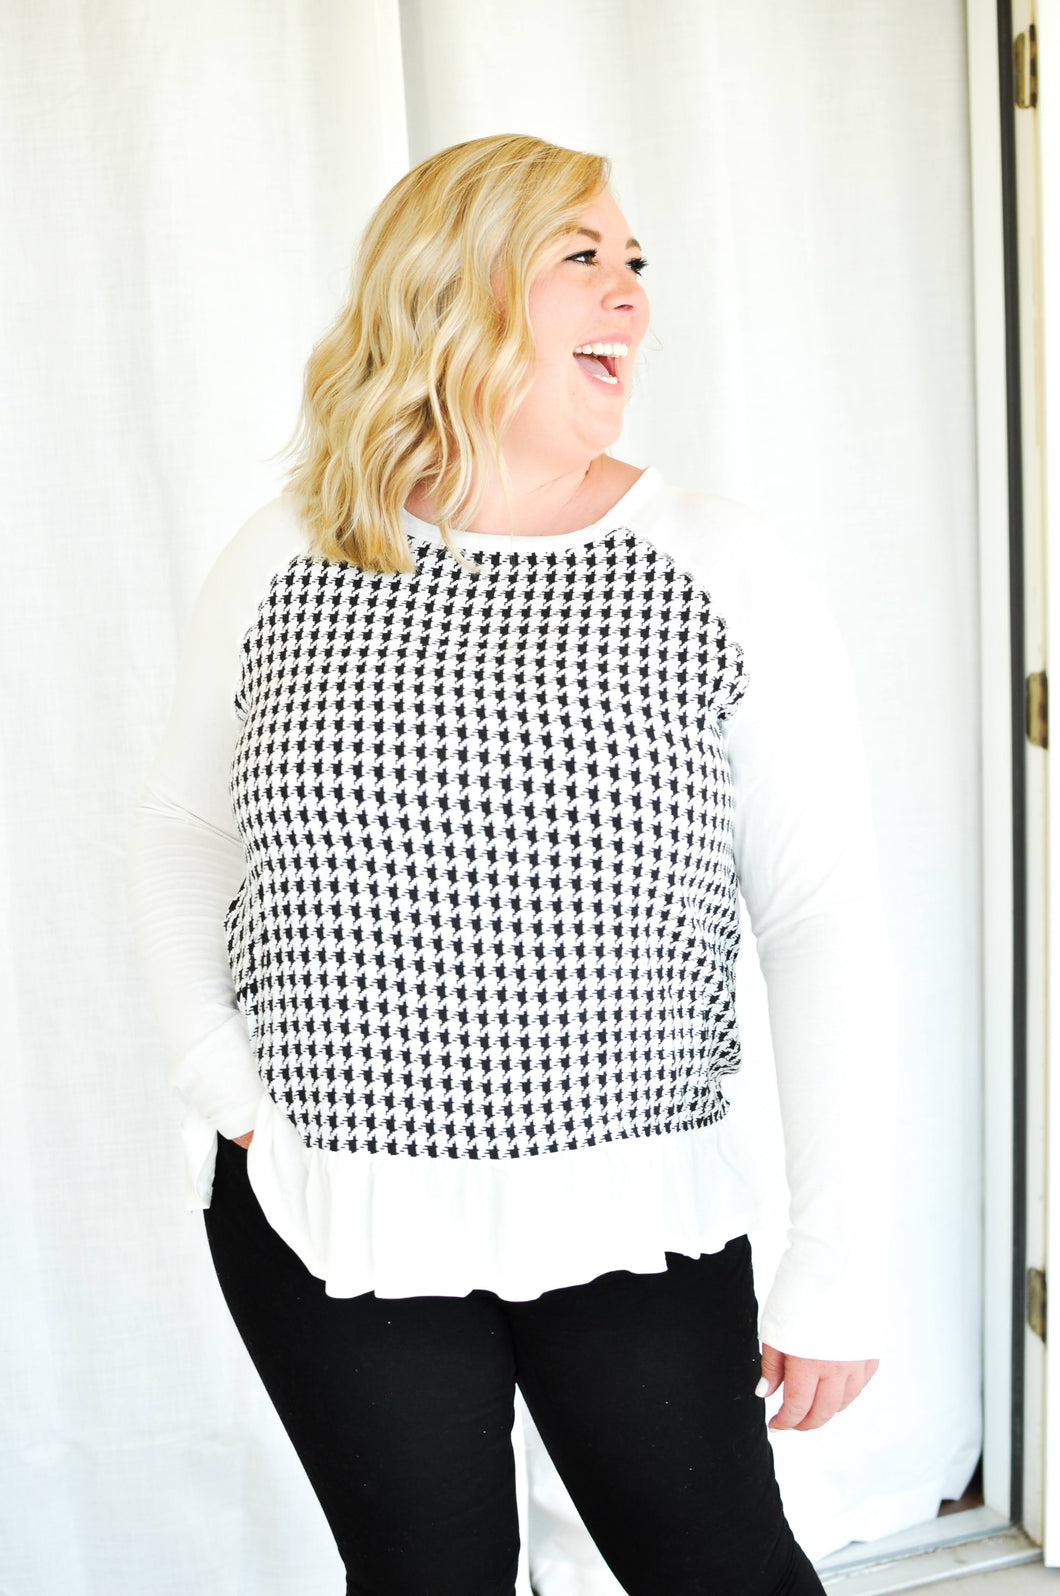 Nothin' but a Houndstooth Top